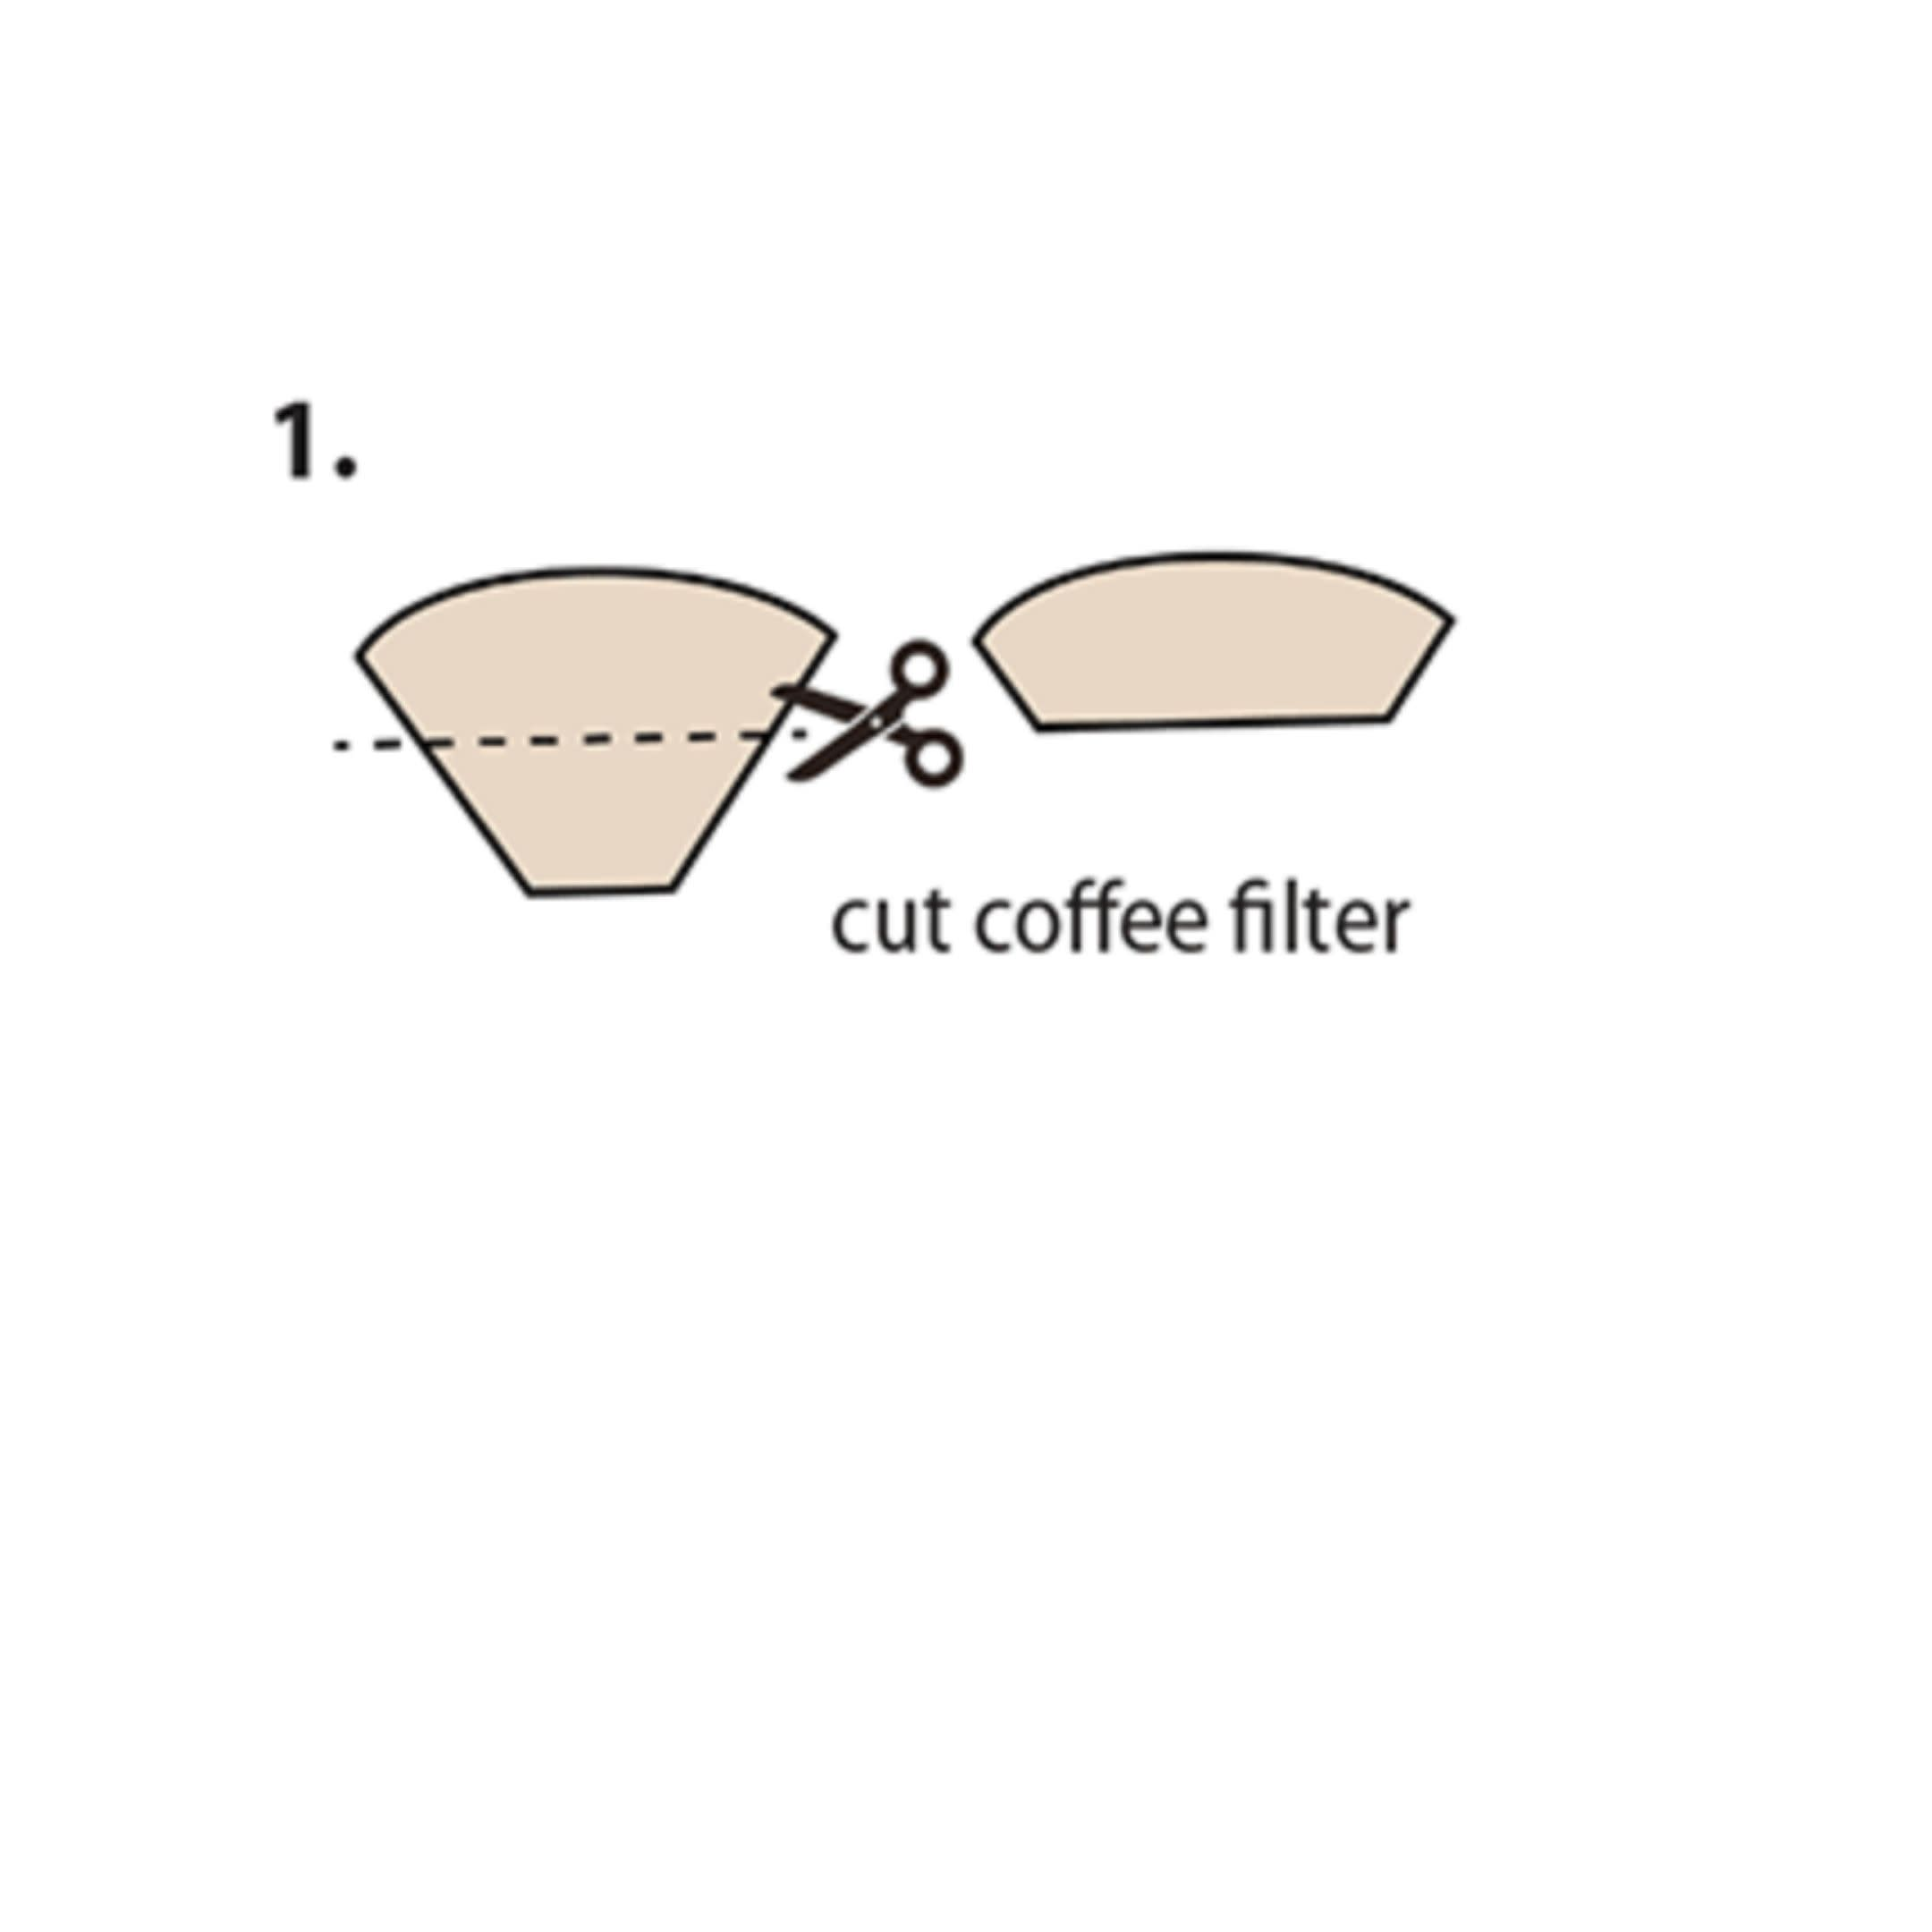 Image via CDC. How to make your own CDC approved coffee filter non-medical mask.